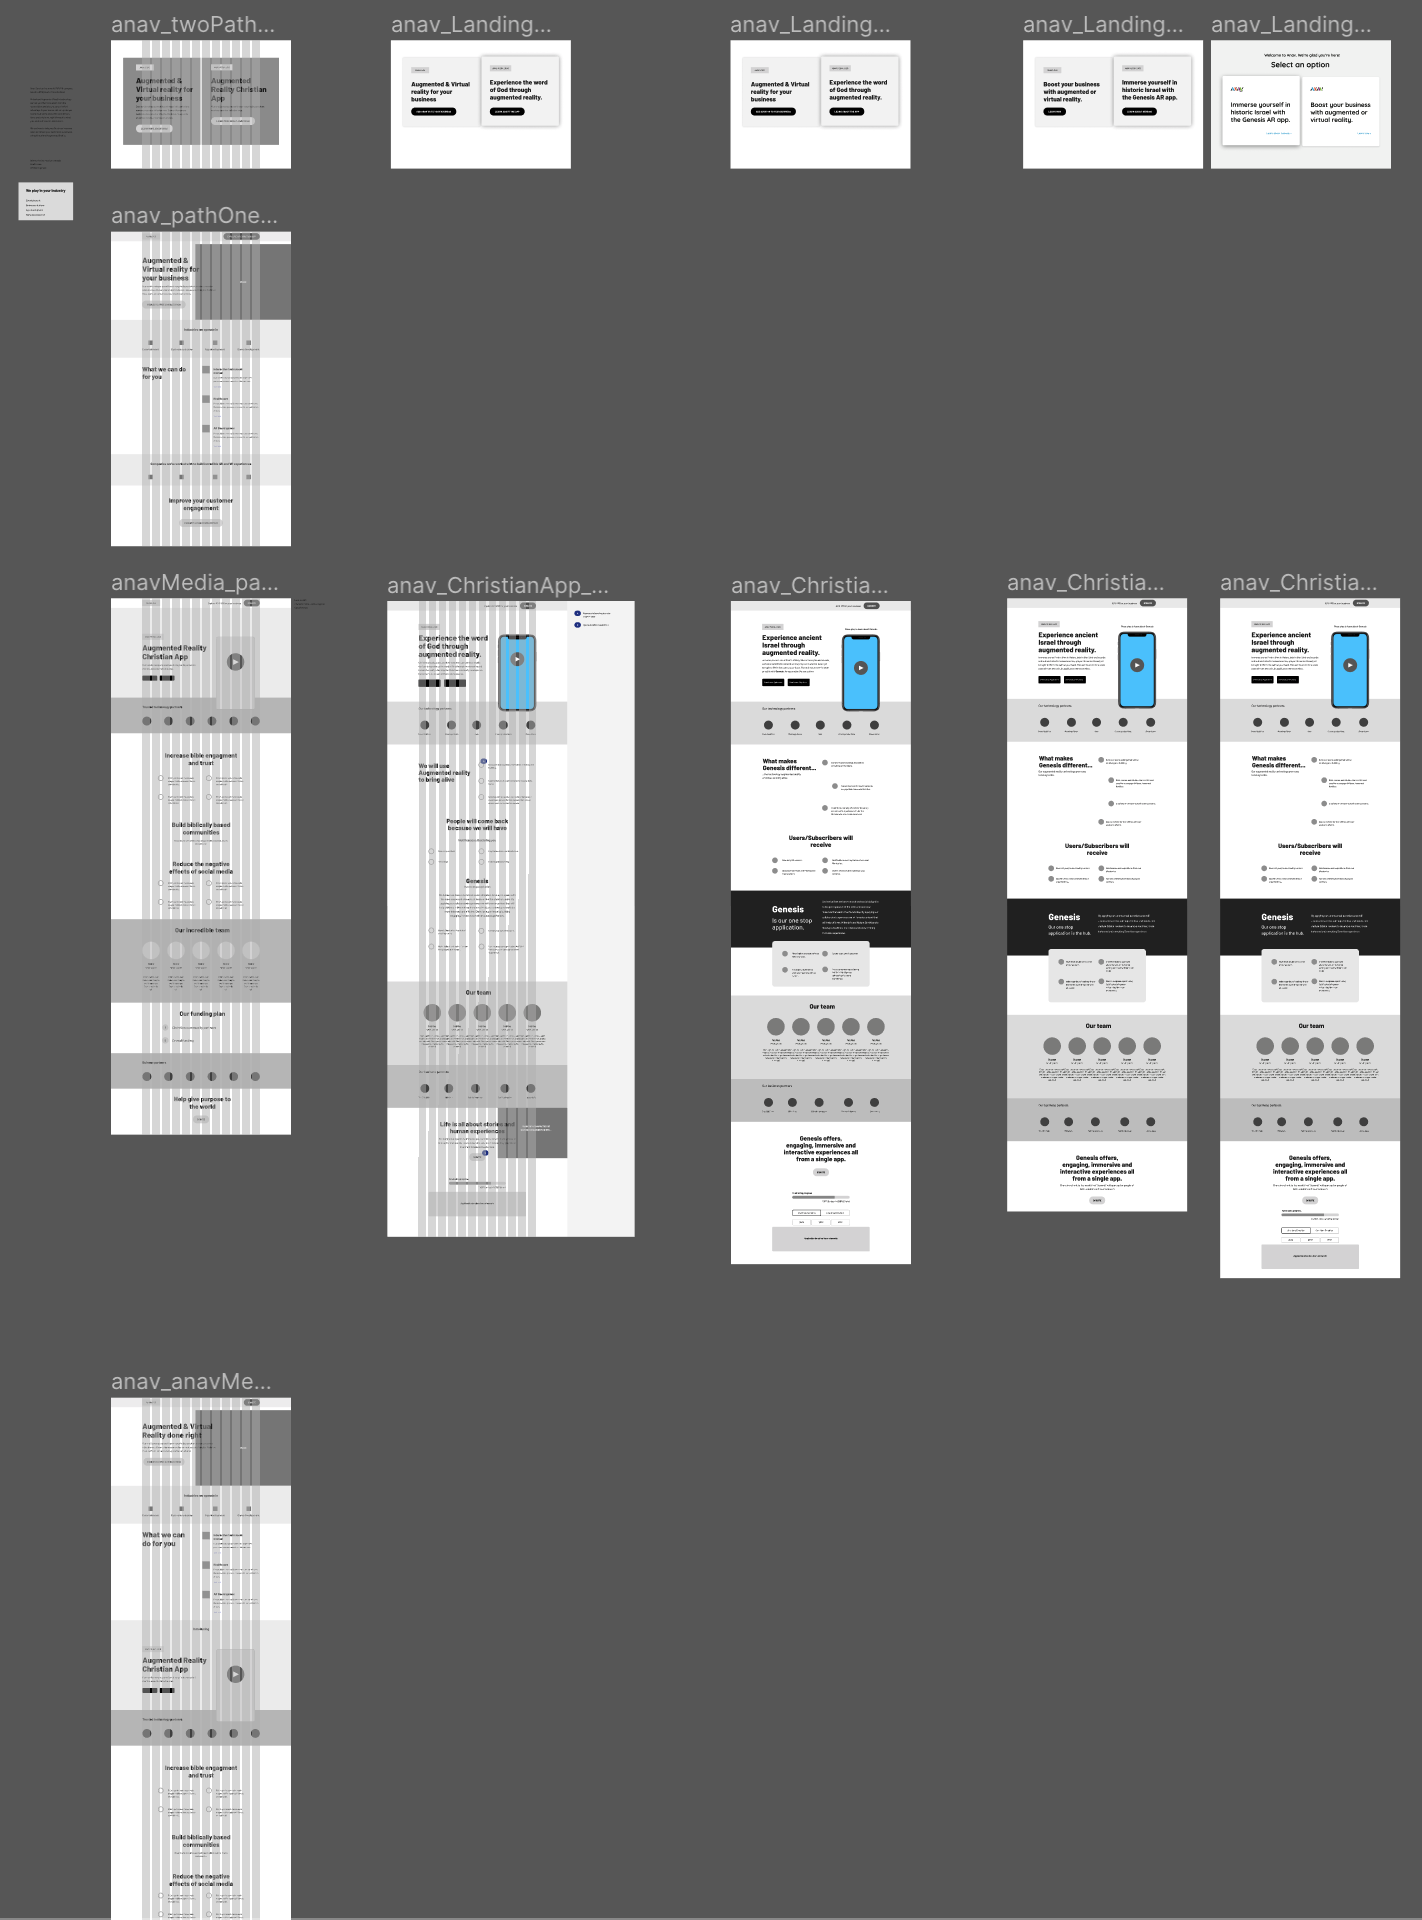 Rounds of wireframing as the project progressed